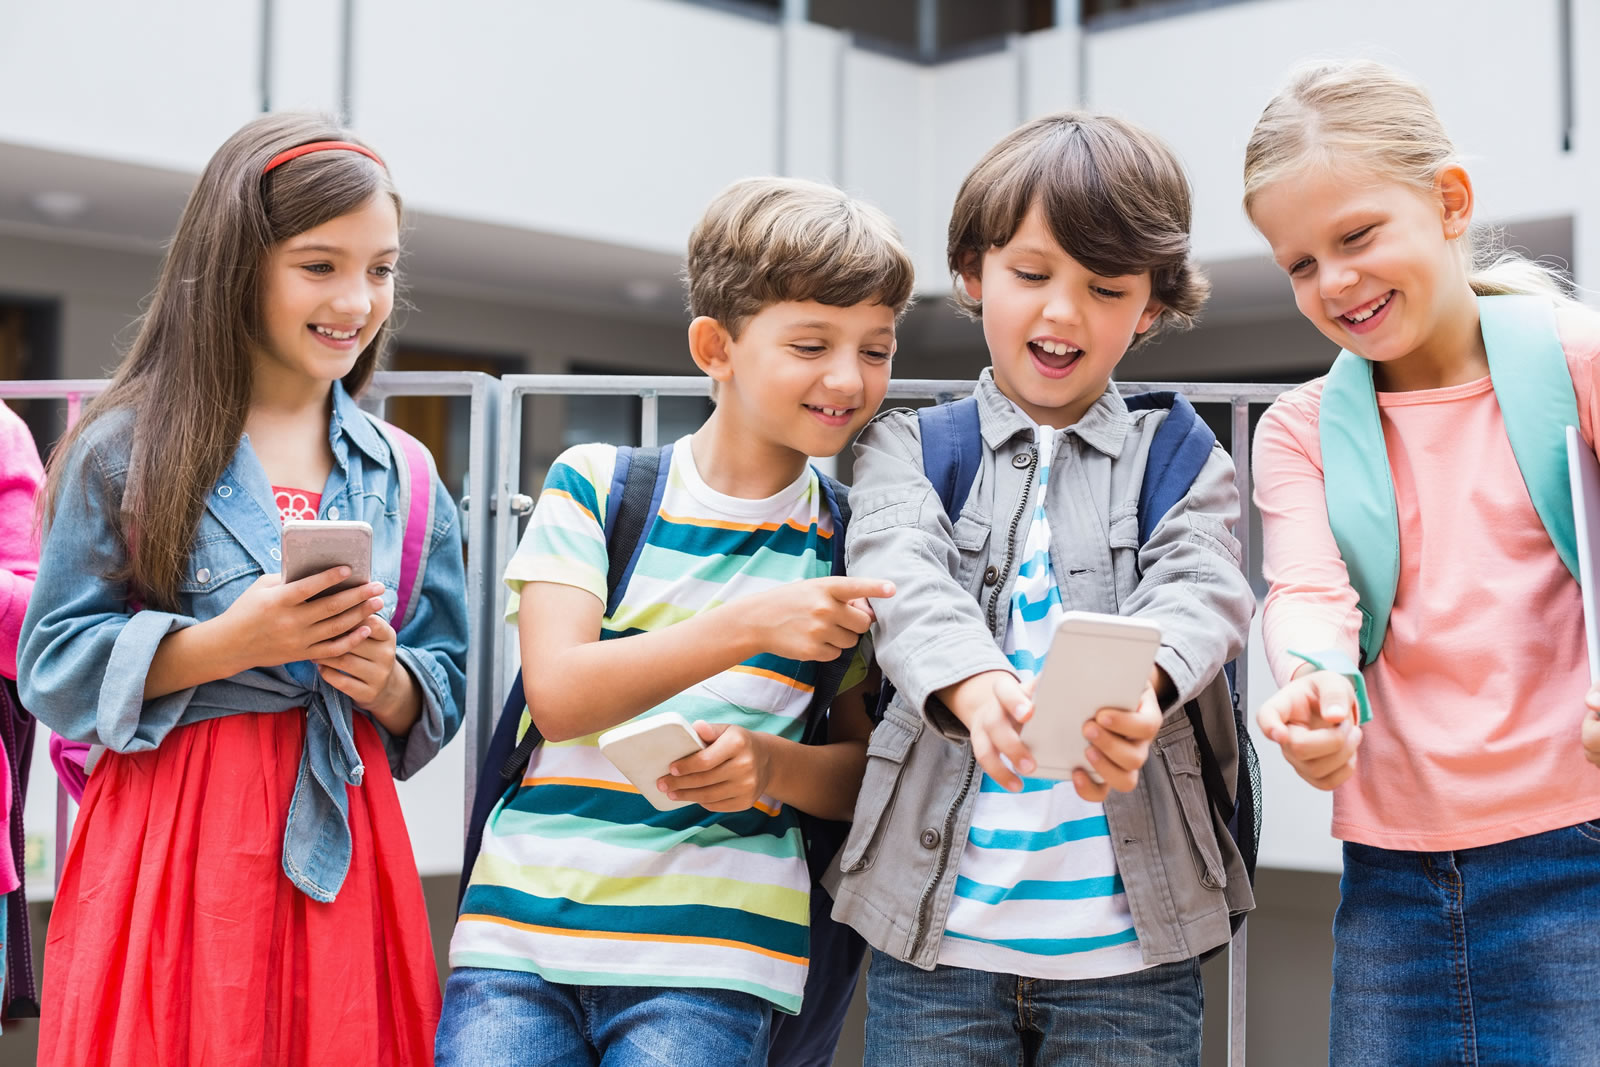 Kids-taking-selfie-with-mobile-170785238